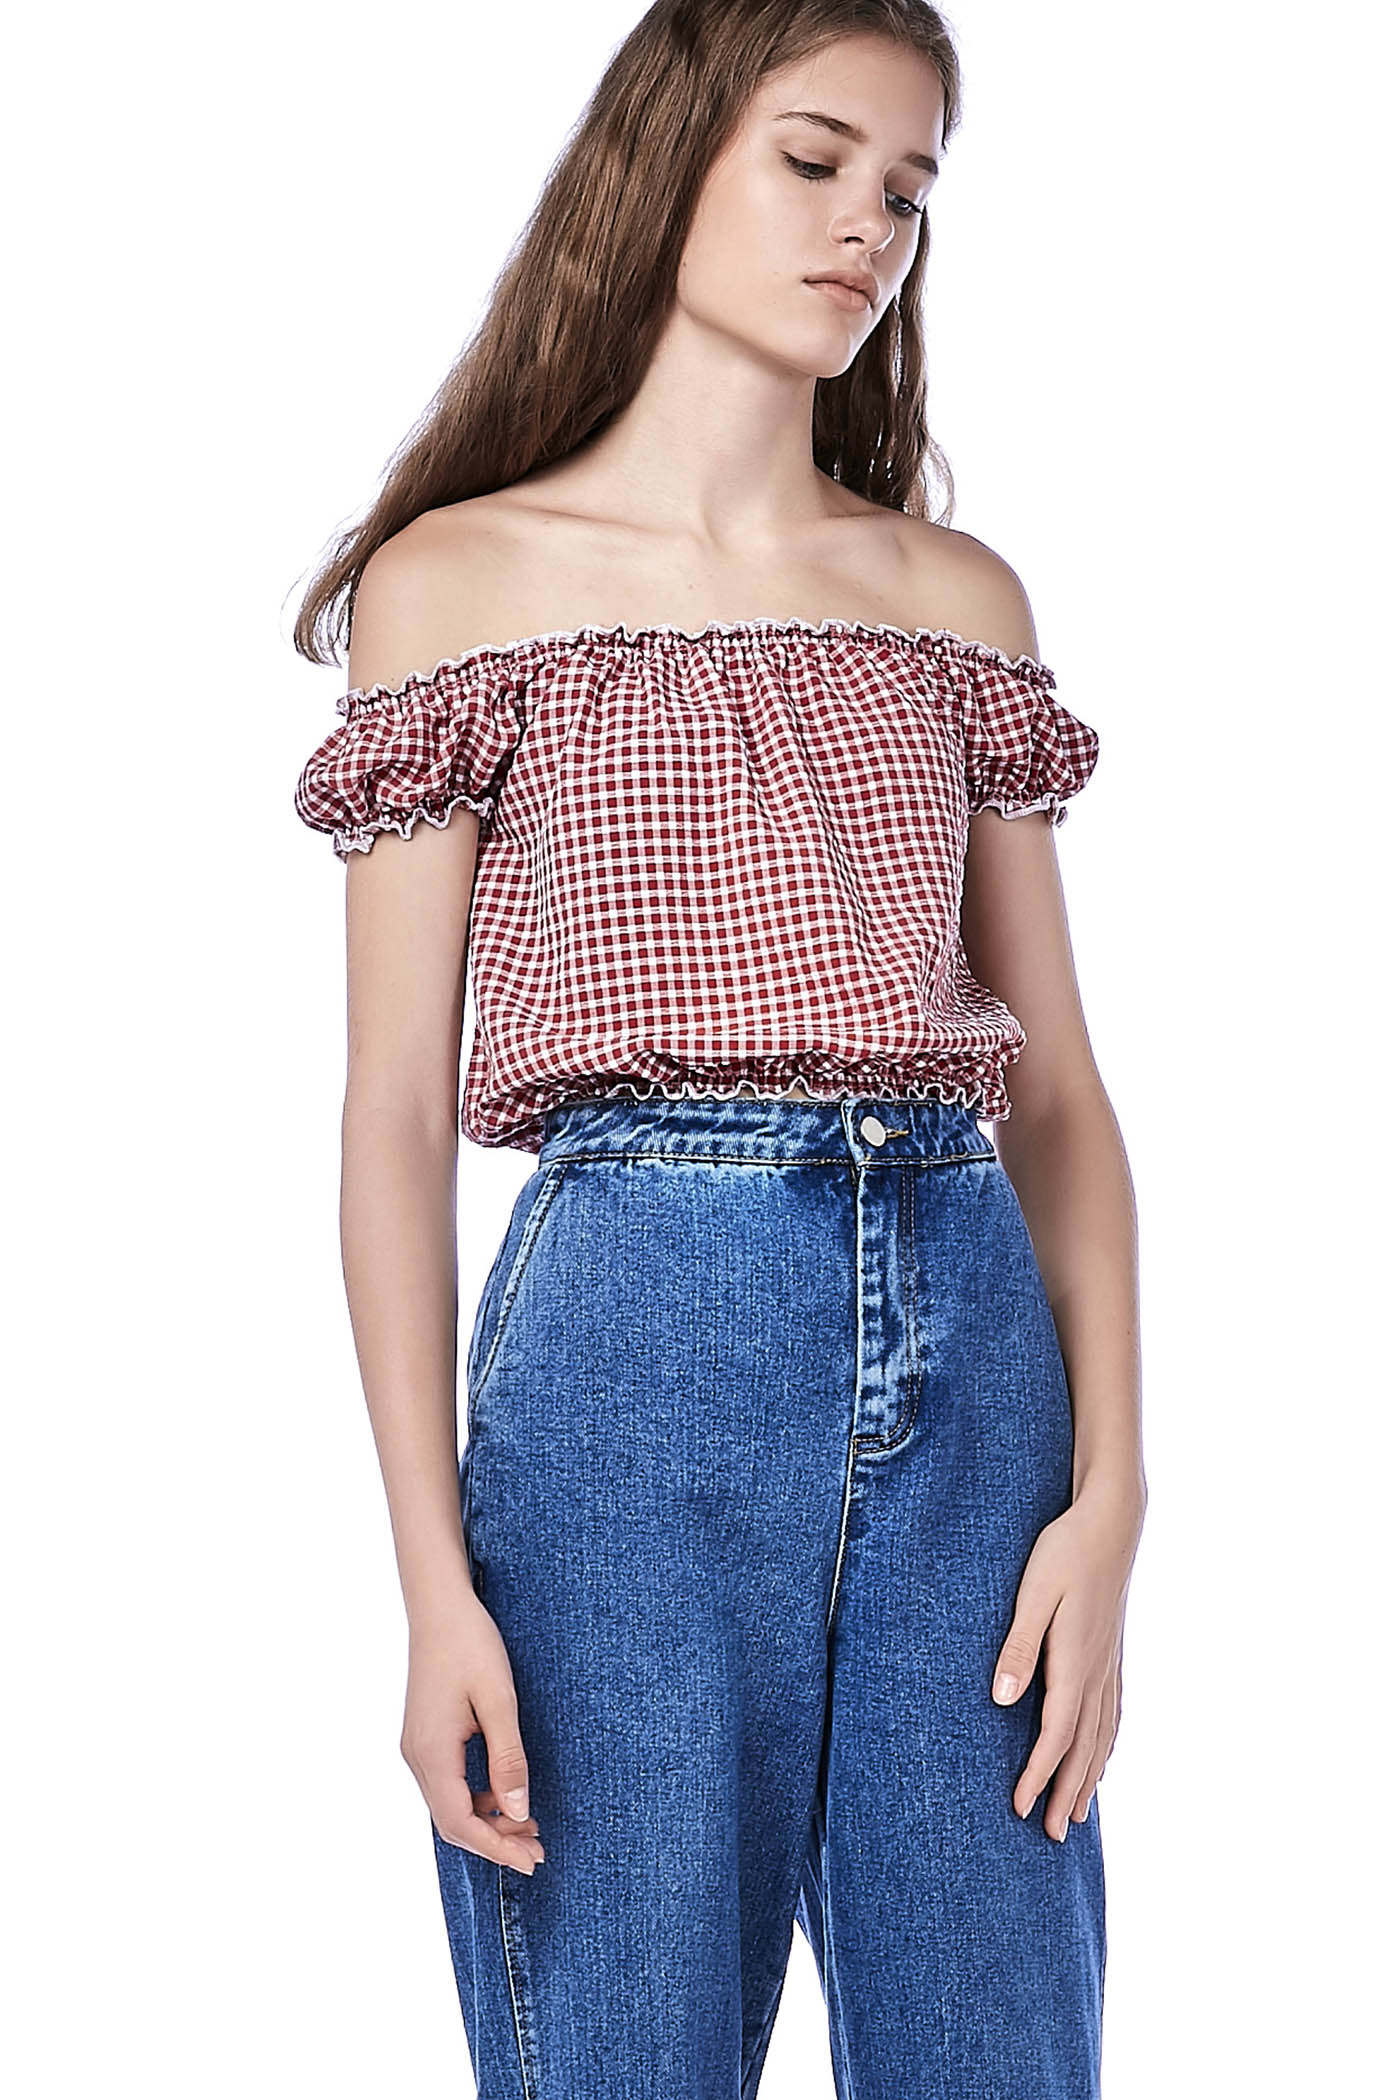 Cilla Crop Top